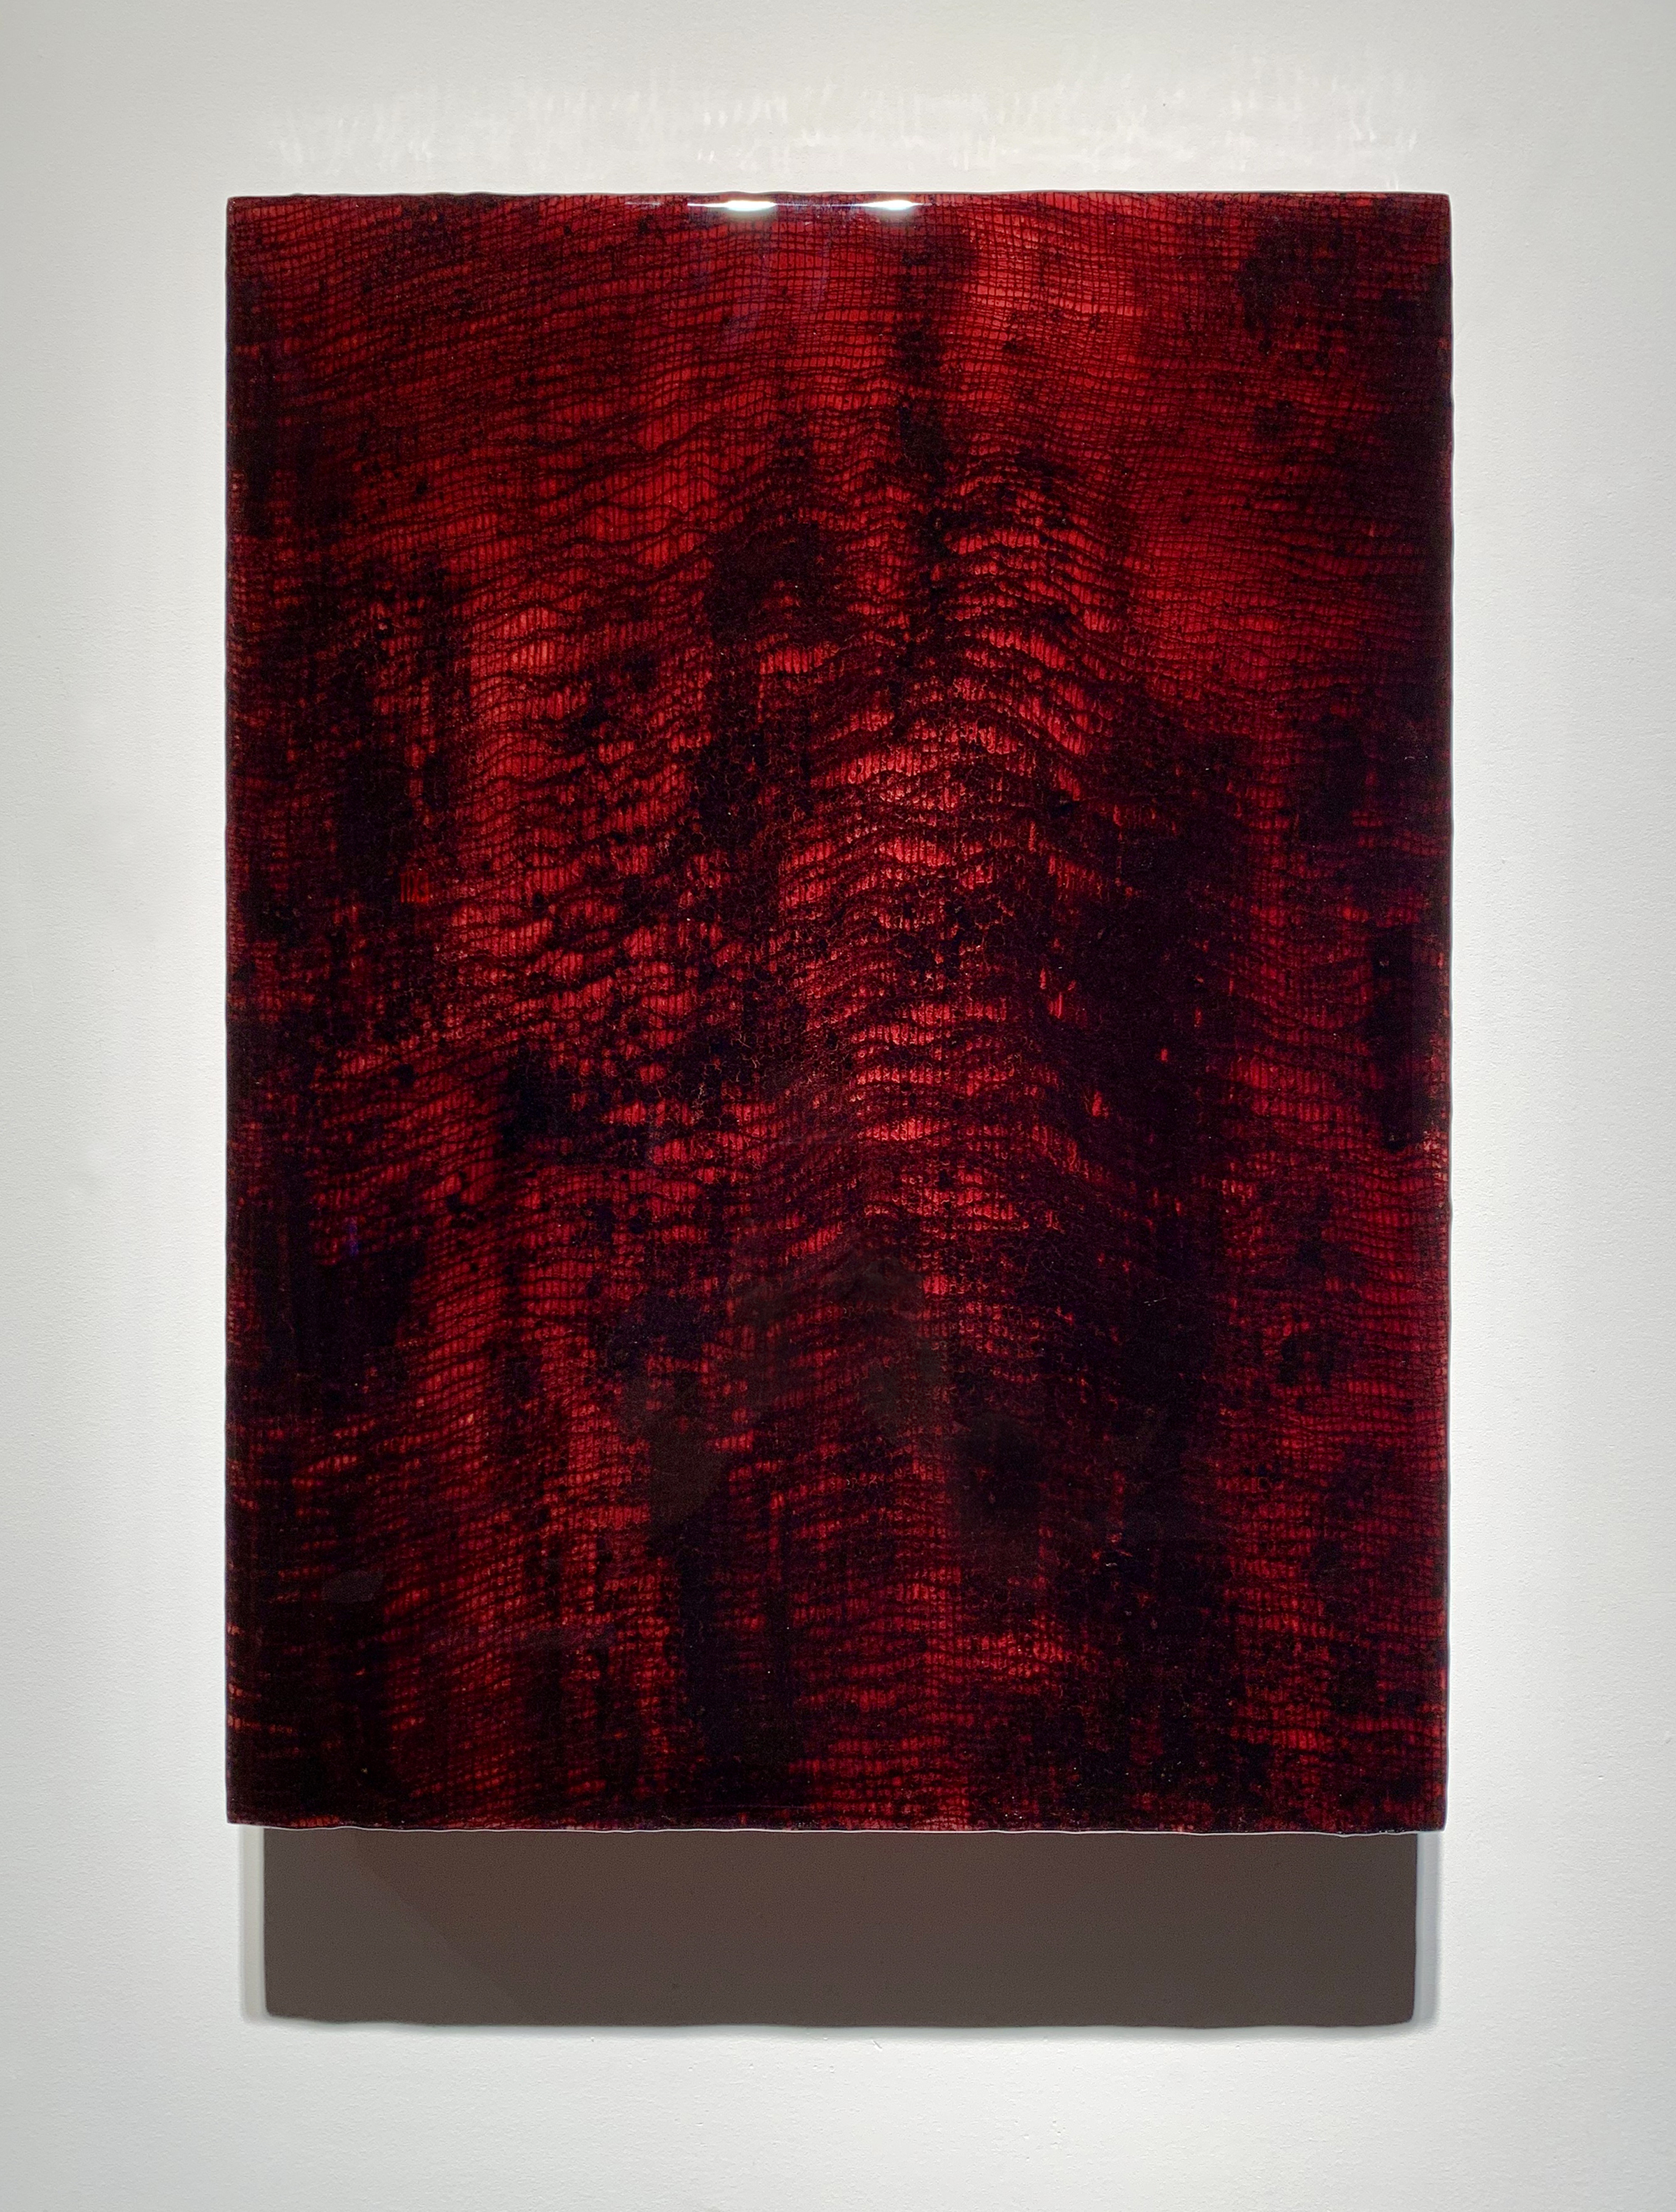 Jordan Eagles, Roze 30, 2018. Blood, gauze, plexiglass, UV resin, 24x18 in